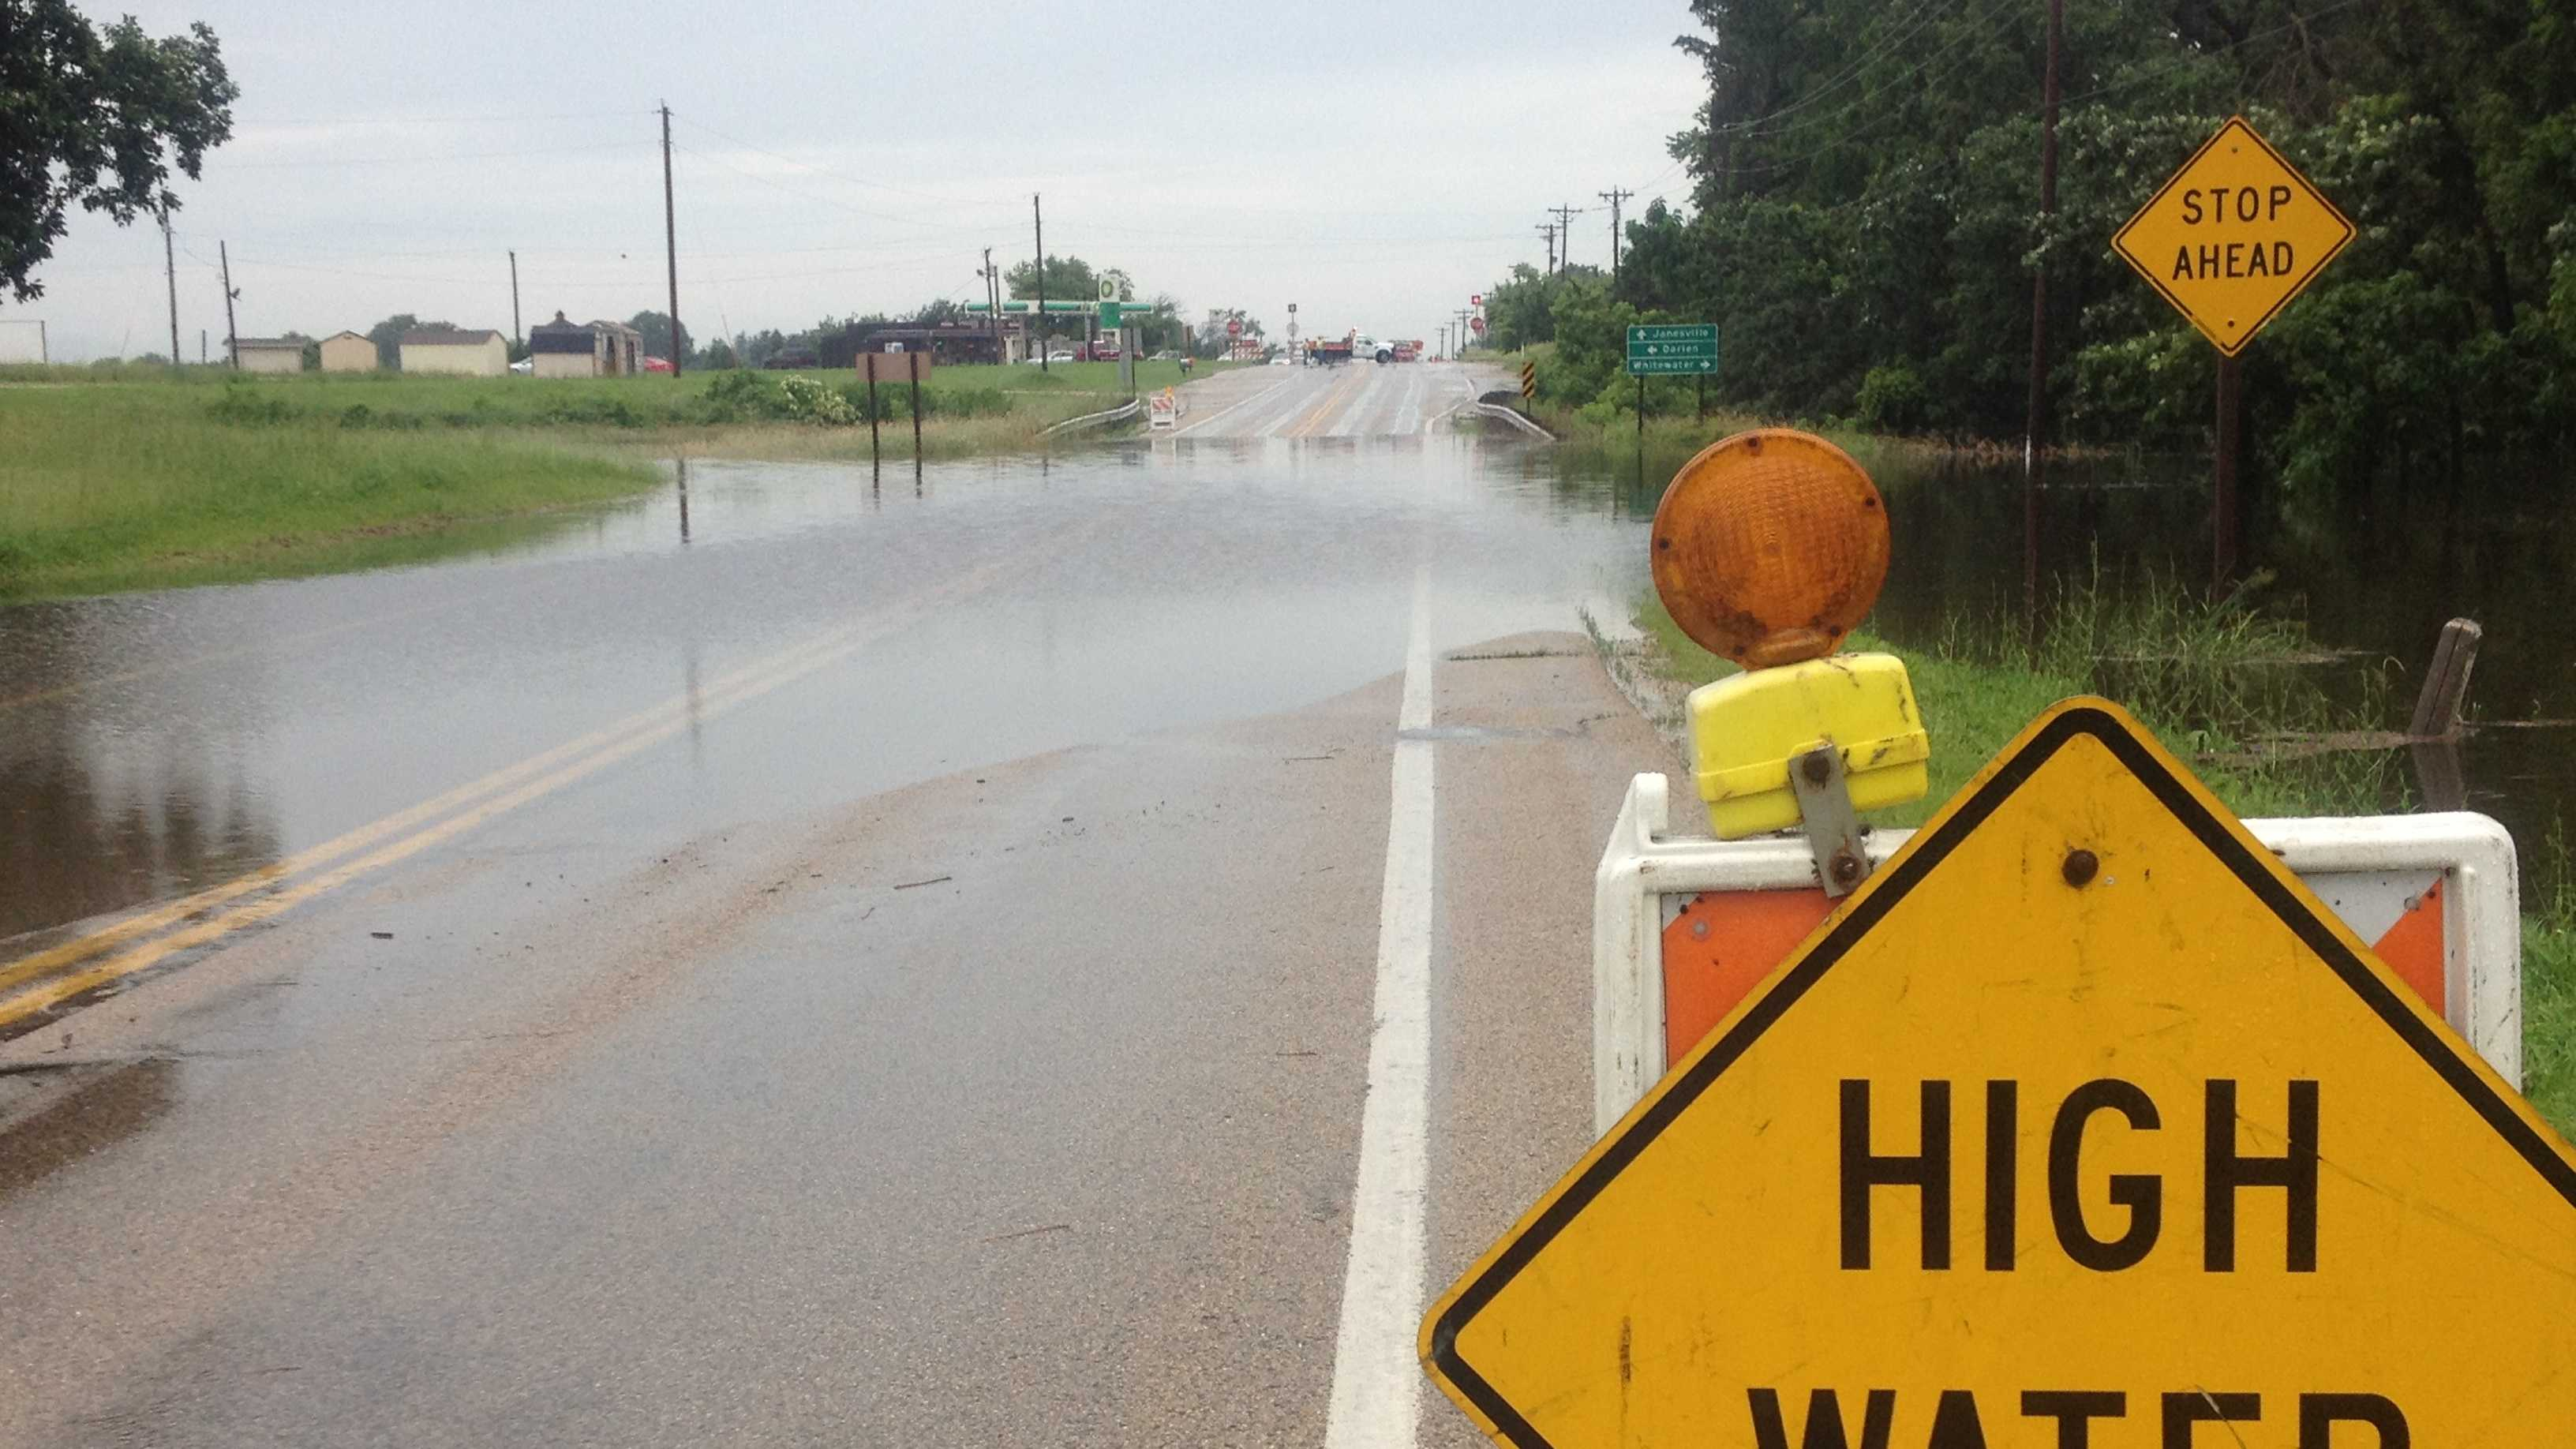 Wis. Hwy 11 in Walworth County closed due to high water on June 26, 2013